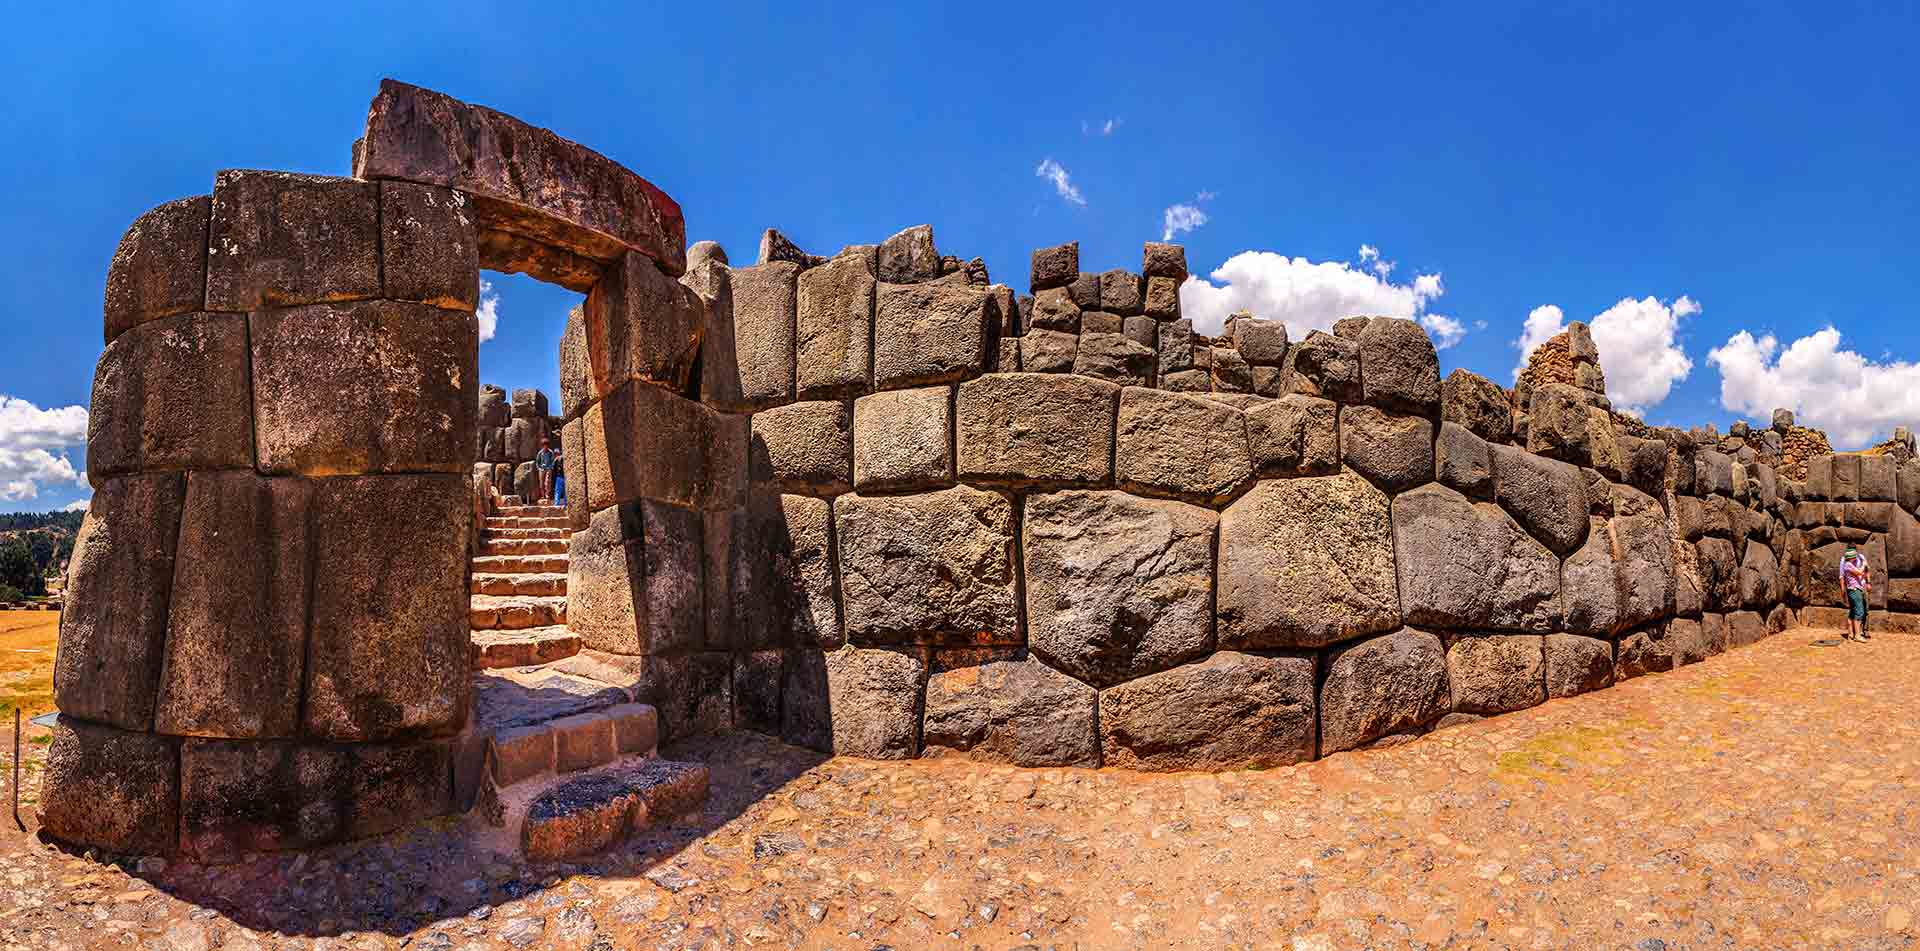 South America Peru Cusco Sacsayhuaman ancient Inca ruins of stone fortress terrace gateway - luxury vacation destinations